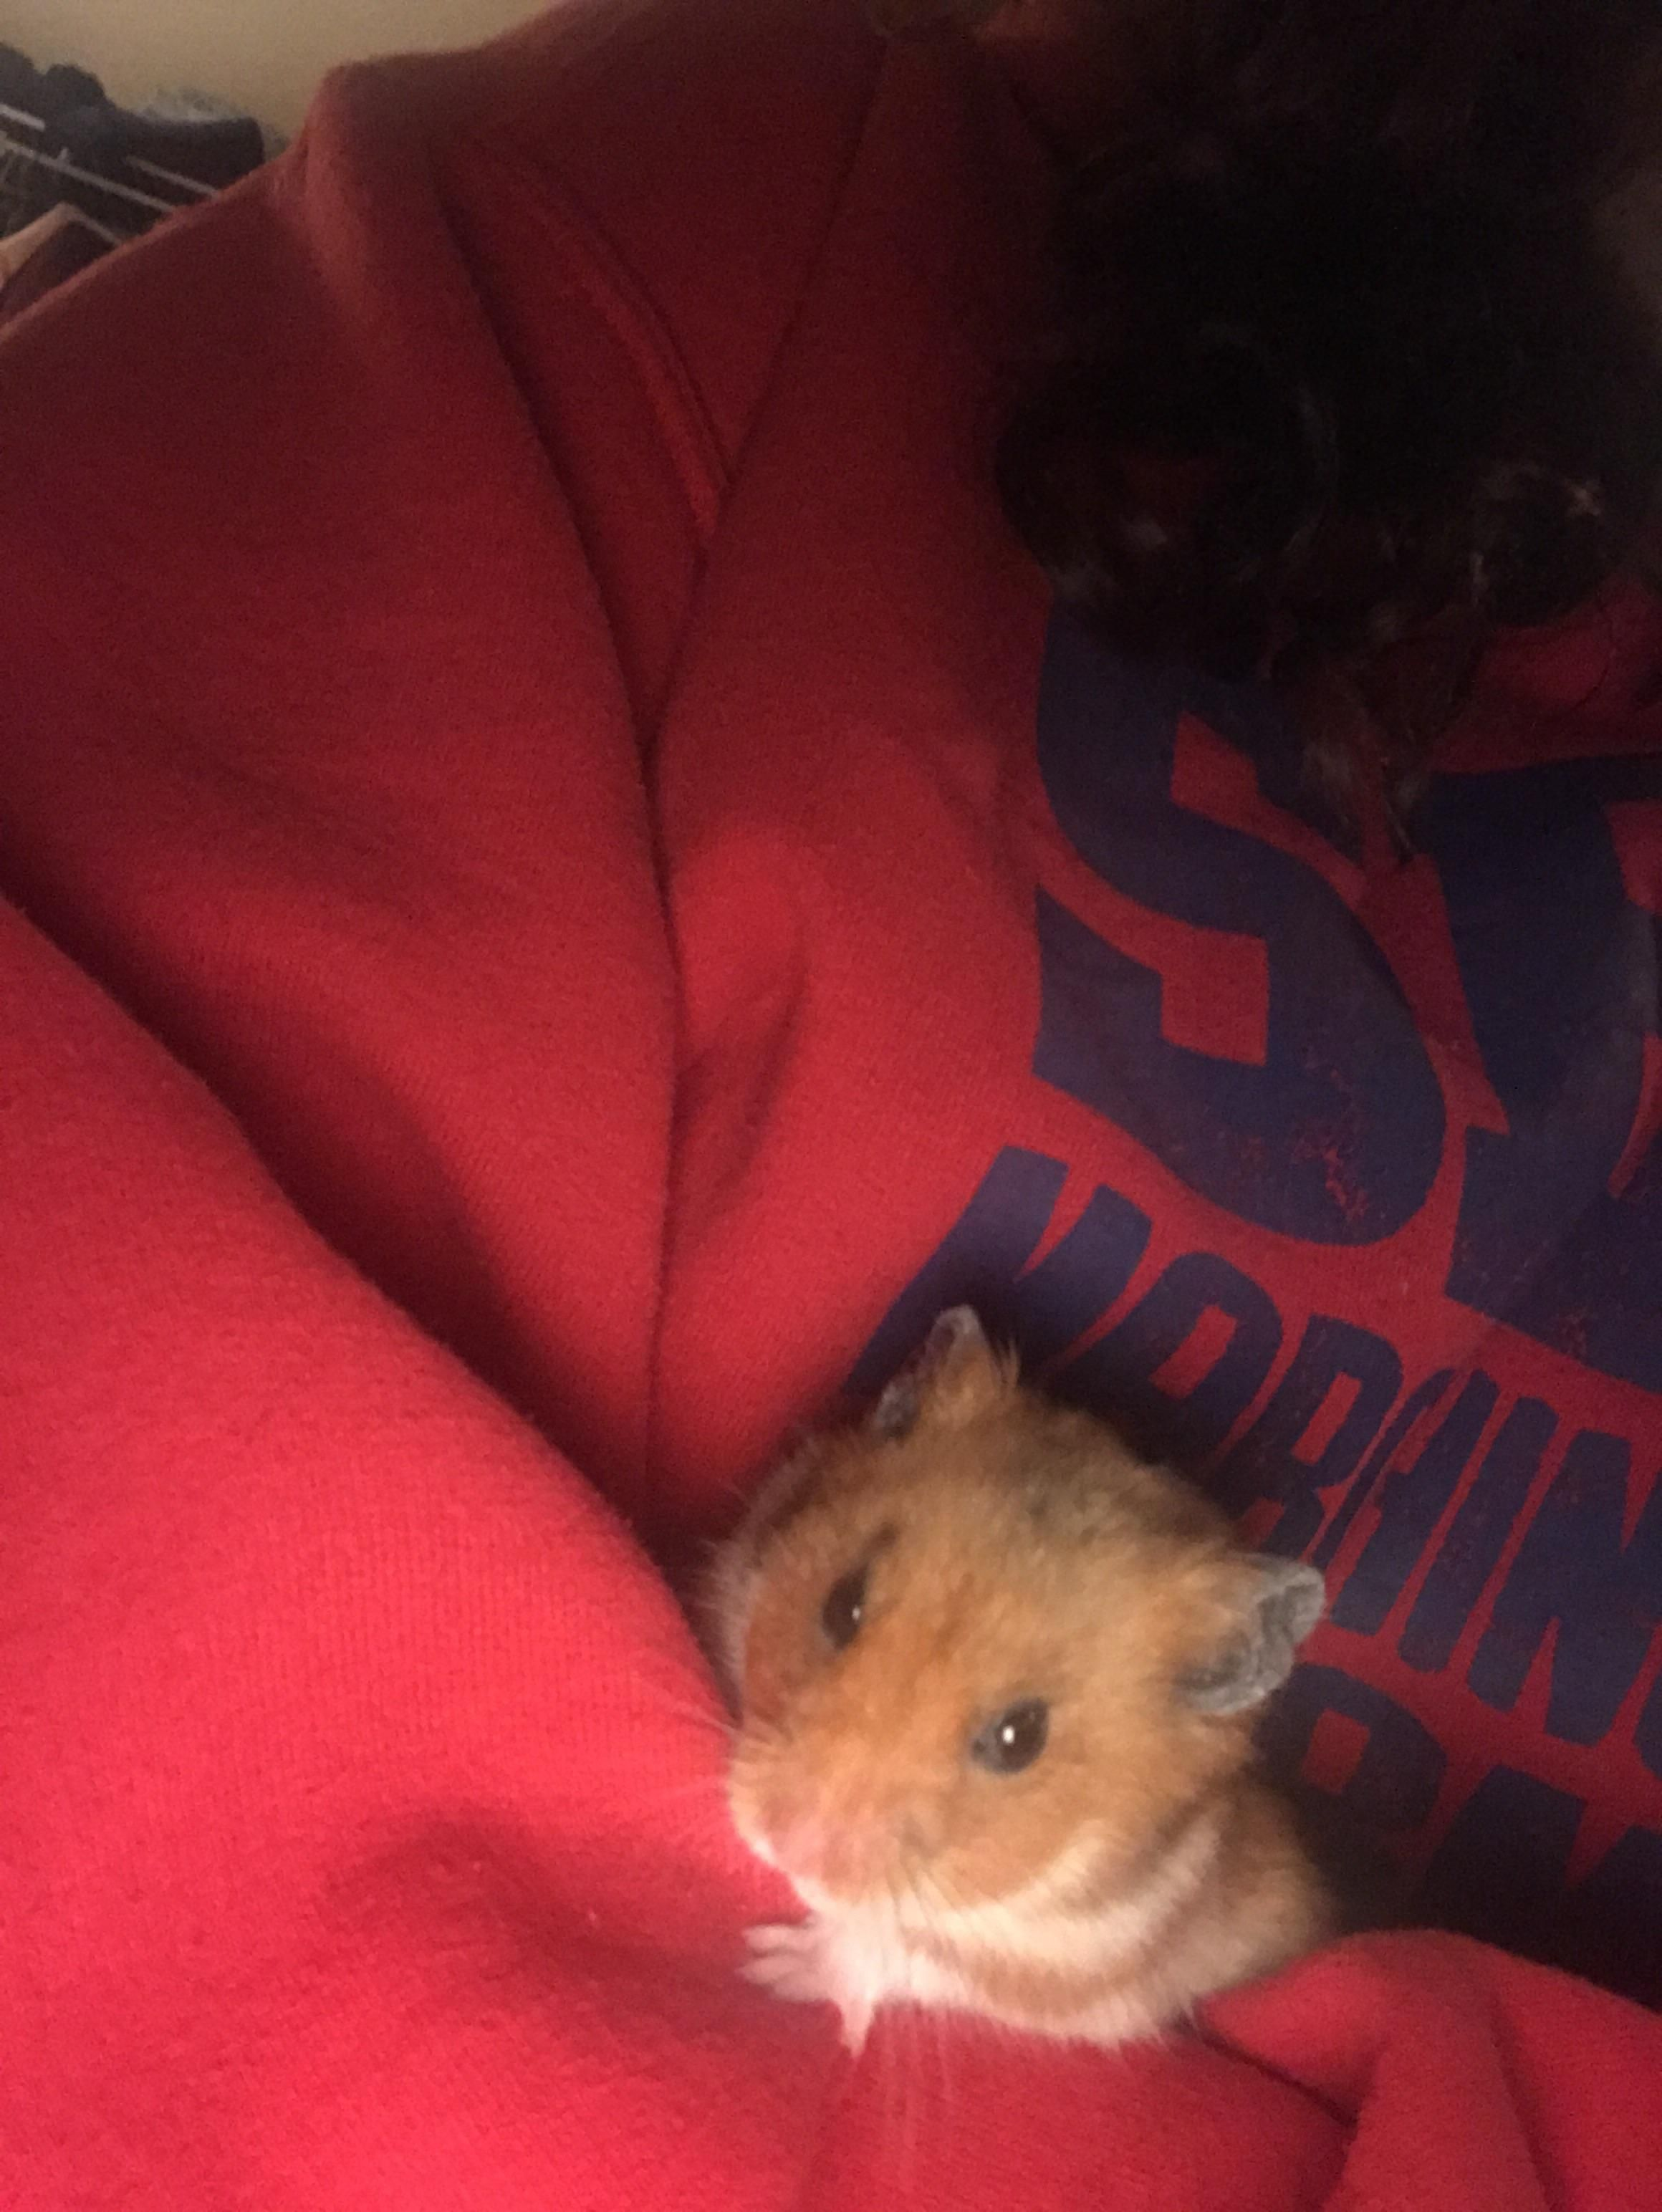 My Old Man Gussie Enjoying A Little Cuddle Session With Me I Can T Believe He S Almost A Year And A Half Old Already Aww Cutehamsters Hamster Hamstersofpi